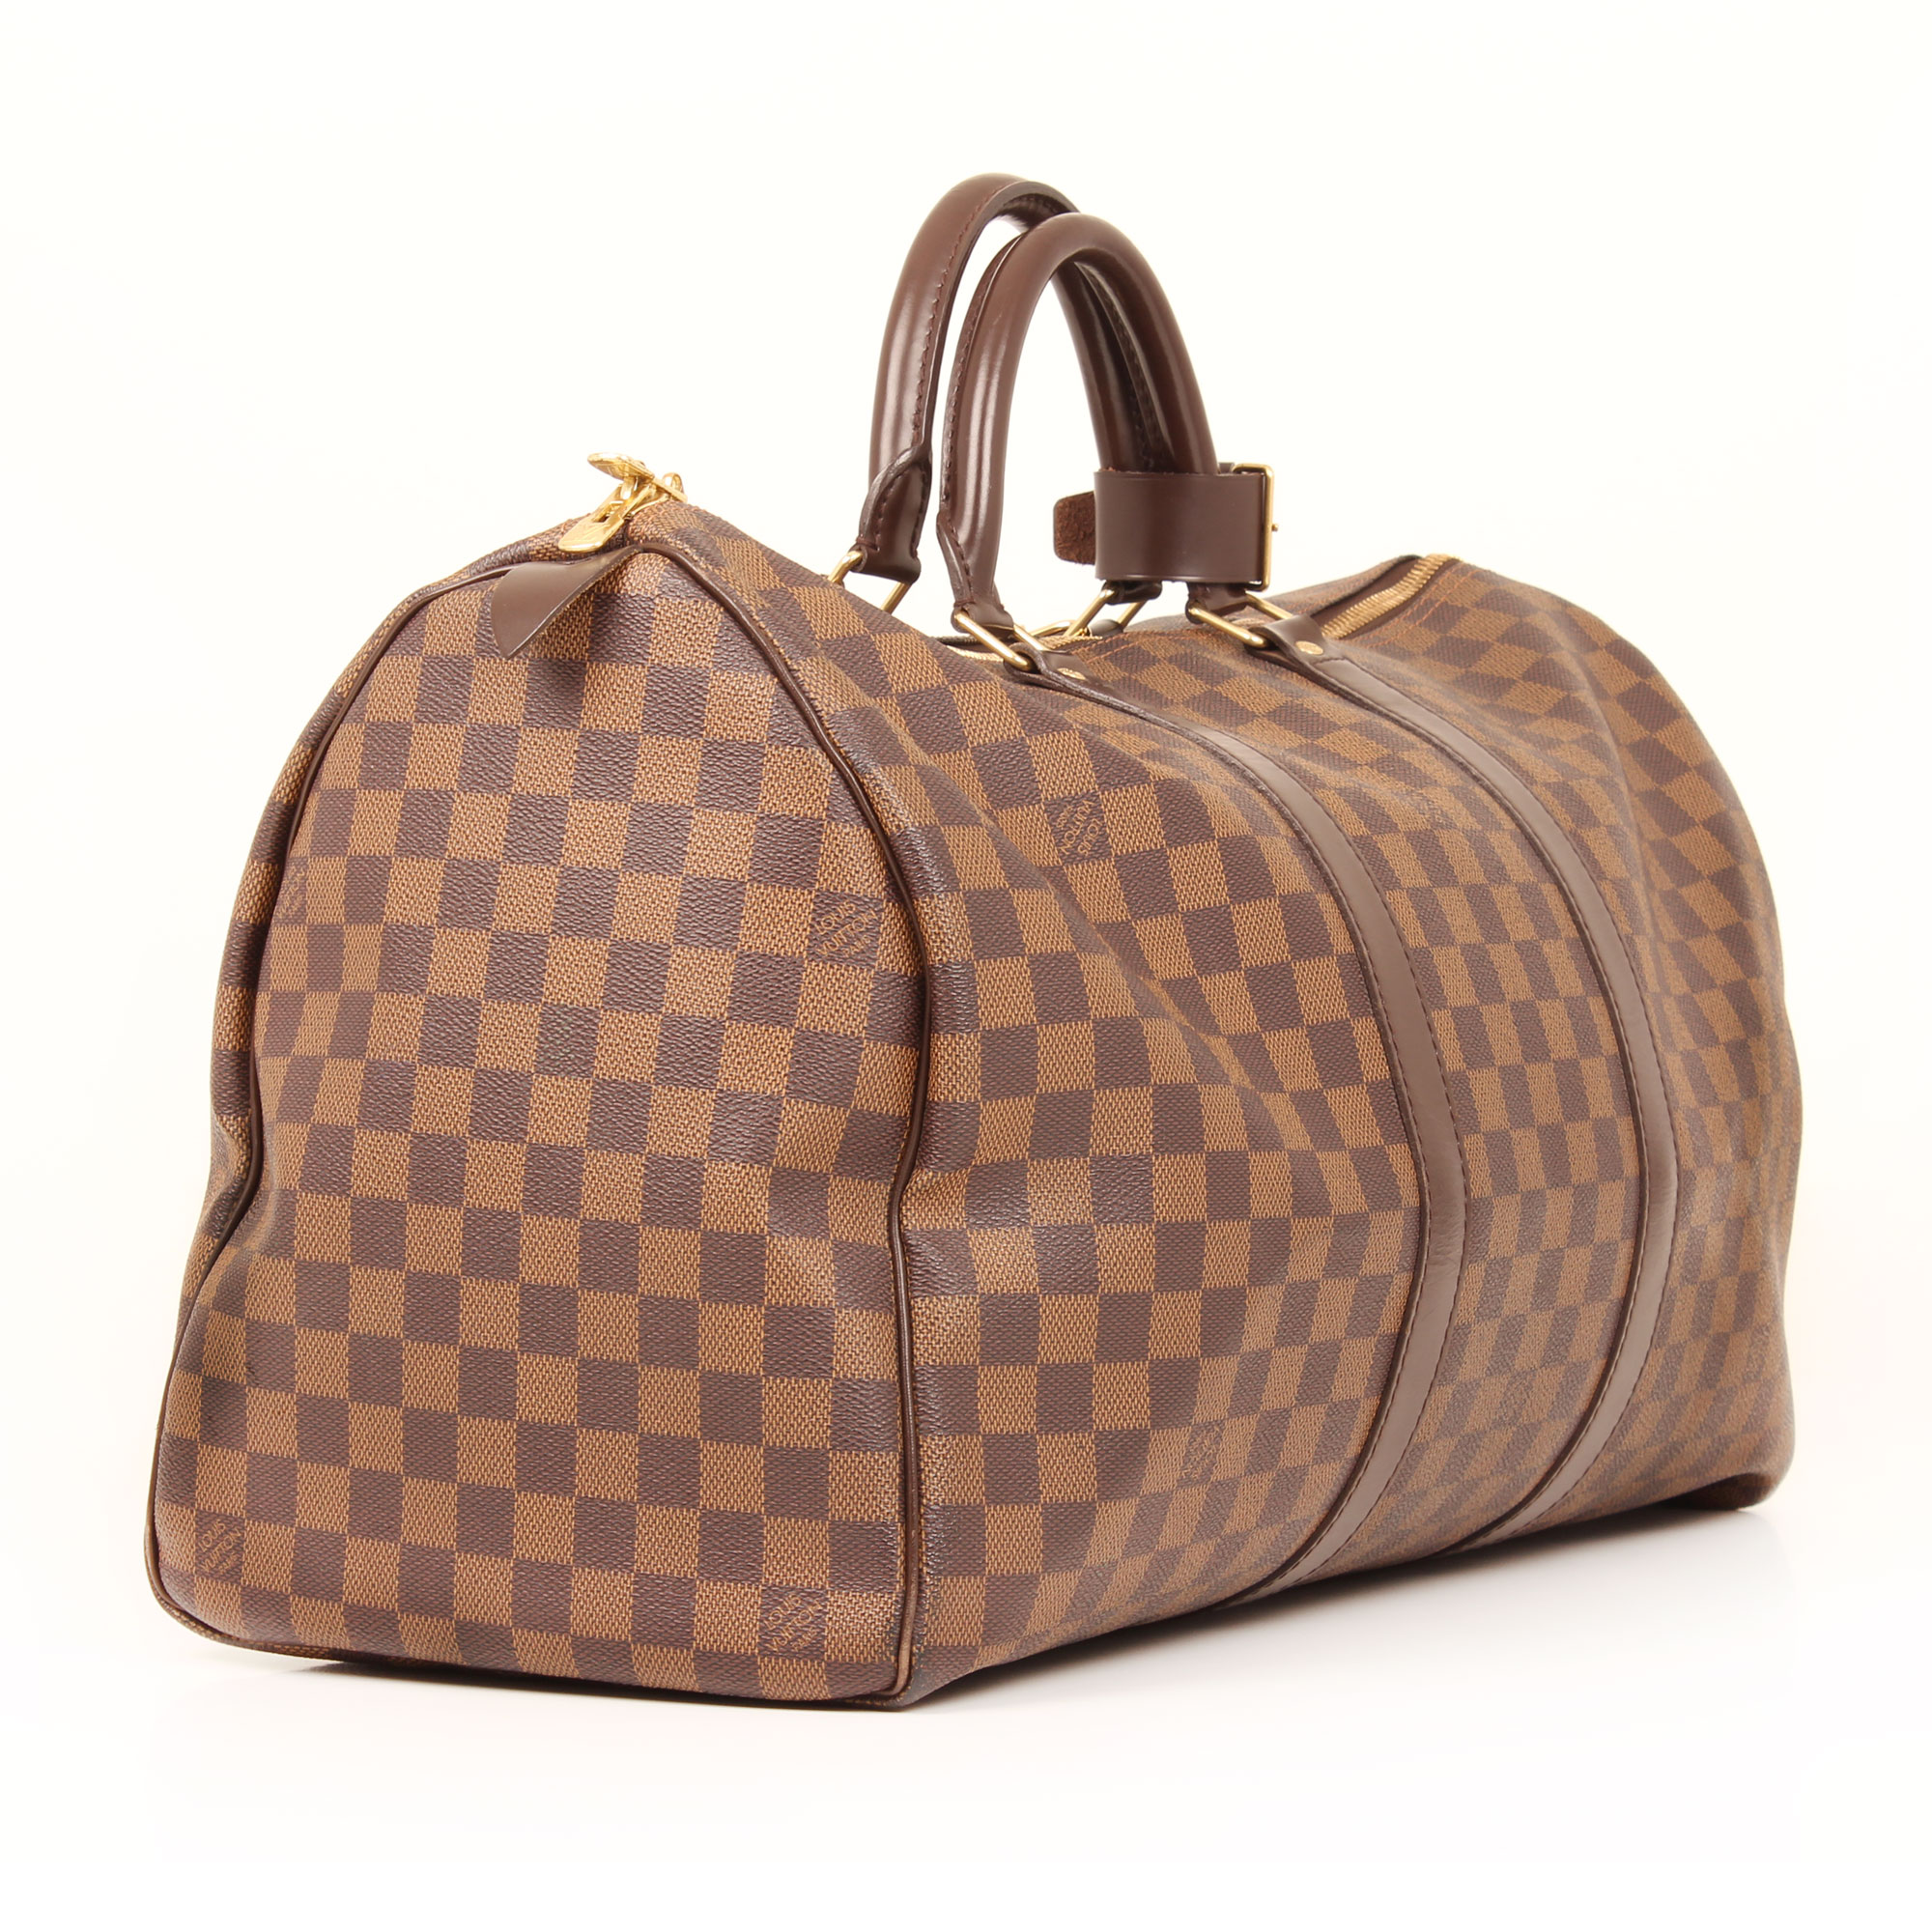 bolsa-de-viaje-louis-vuitton-keepall-50-damier-ebene-lateral